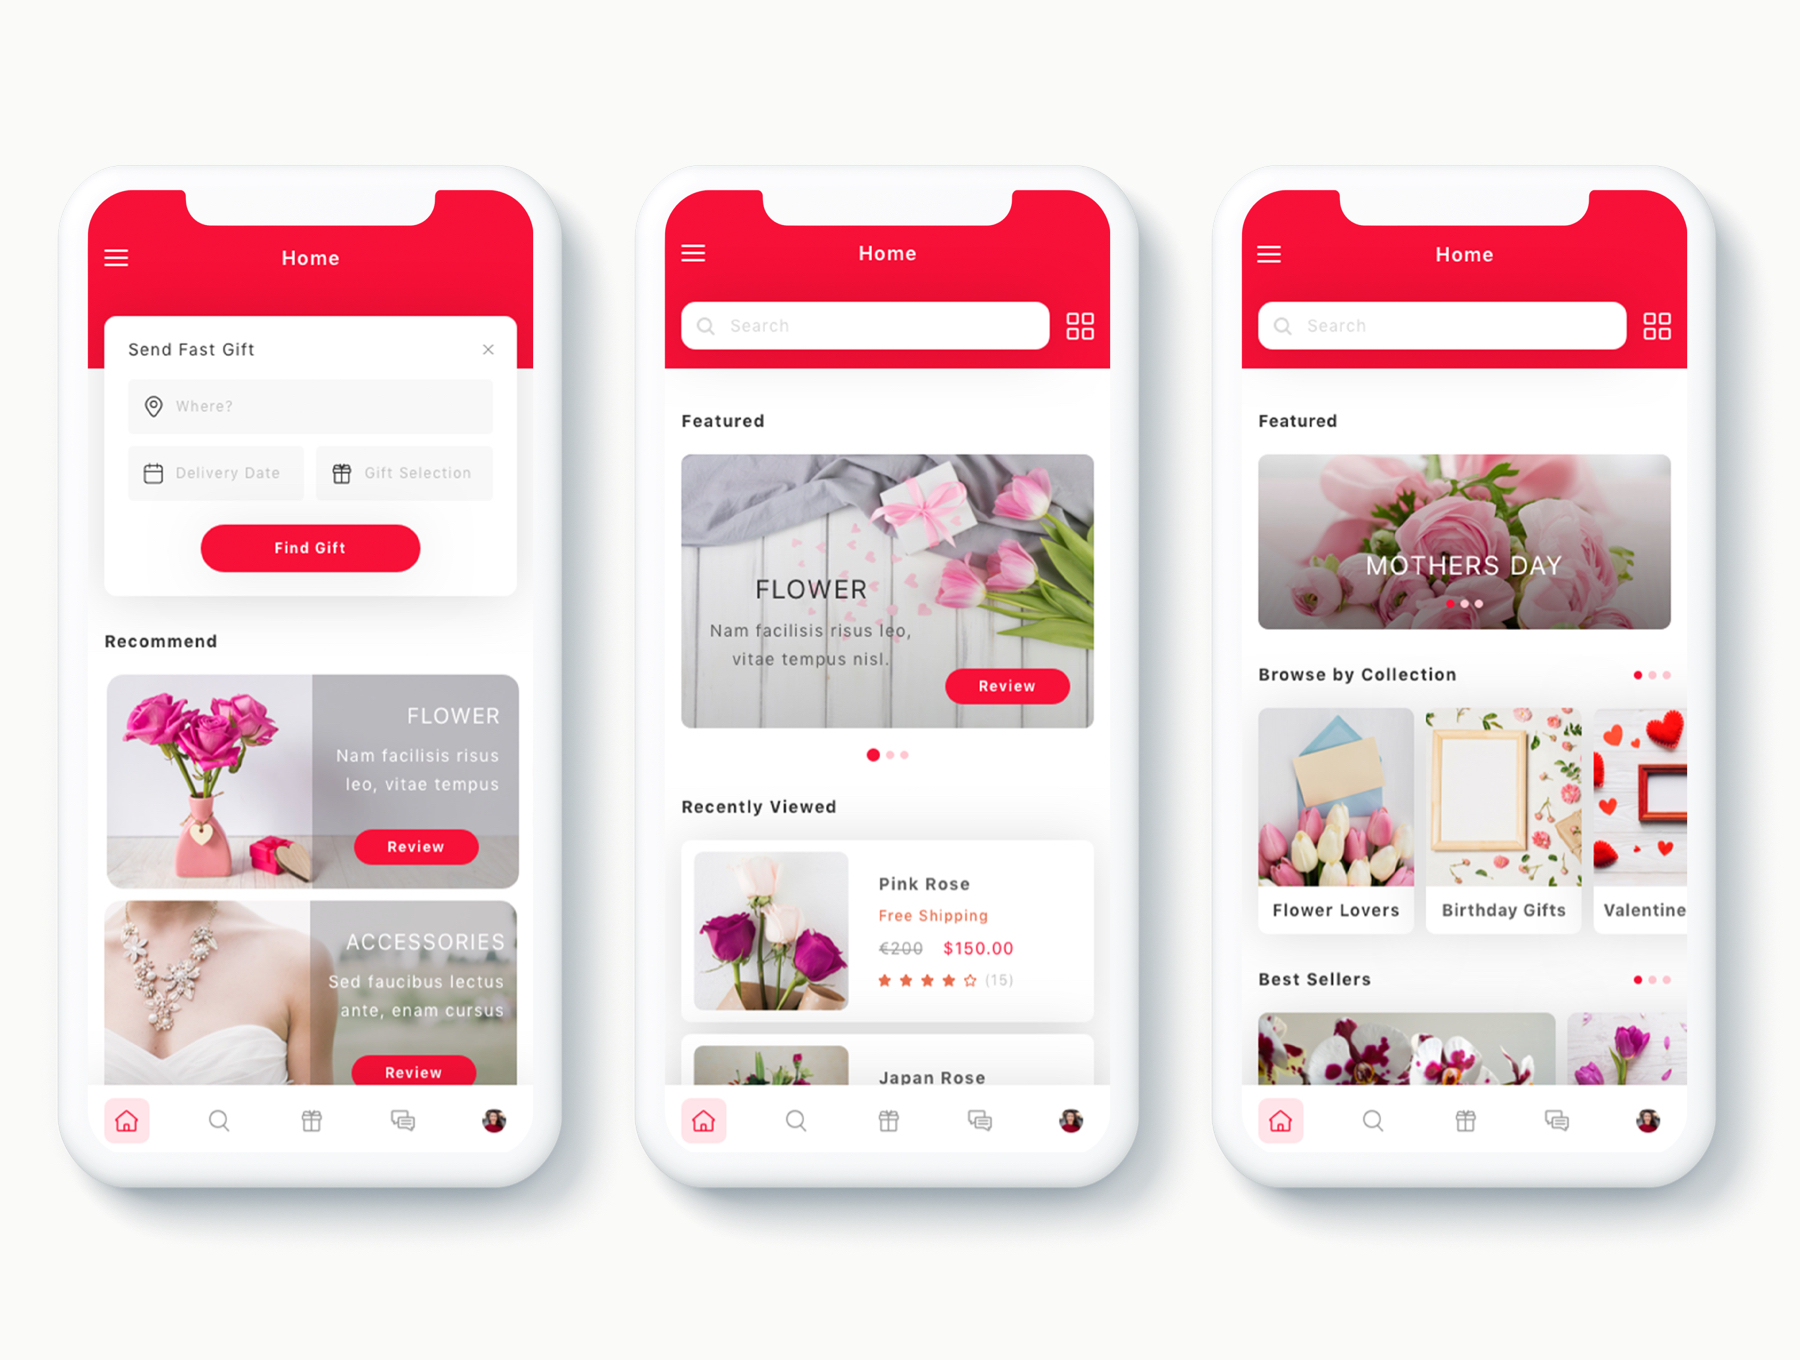 鲜花礼物礼品APP UI平台设计模板套装下载[Sketch,XD] Zambak Gift and Flower Delivery App UI Kit